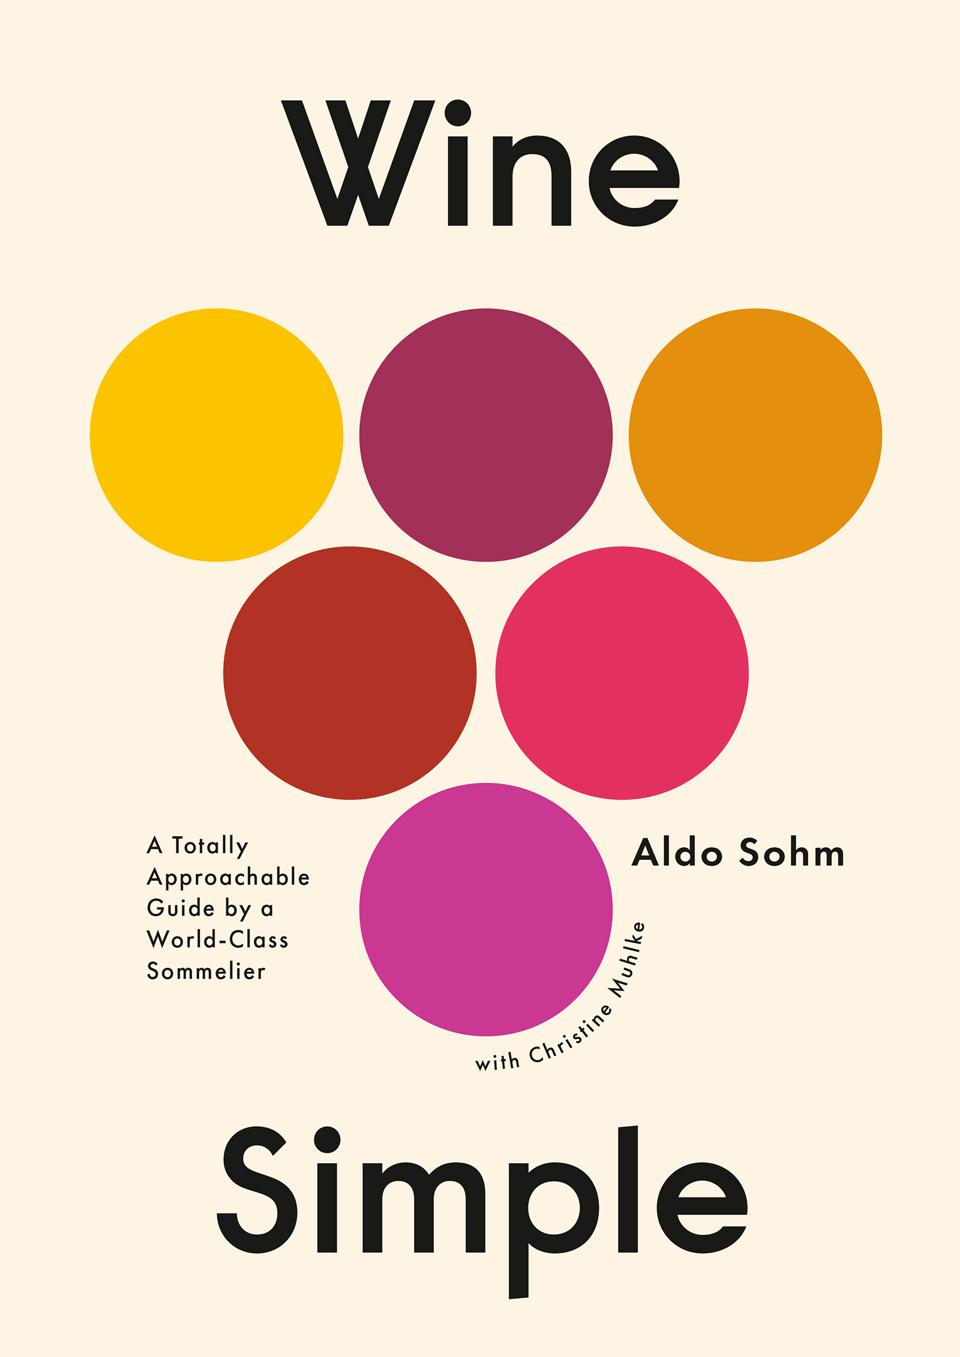 Wine Simple is a fun and approachable guide to wine.